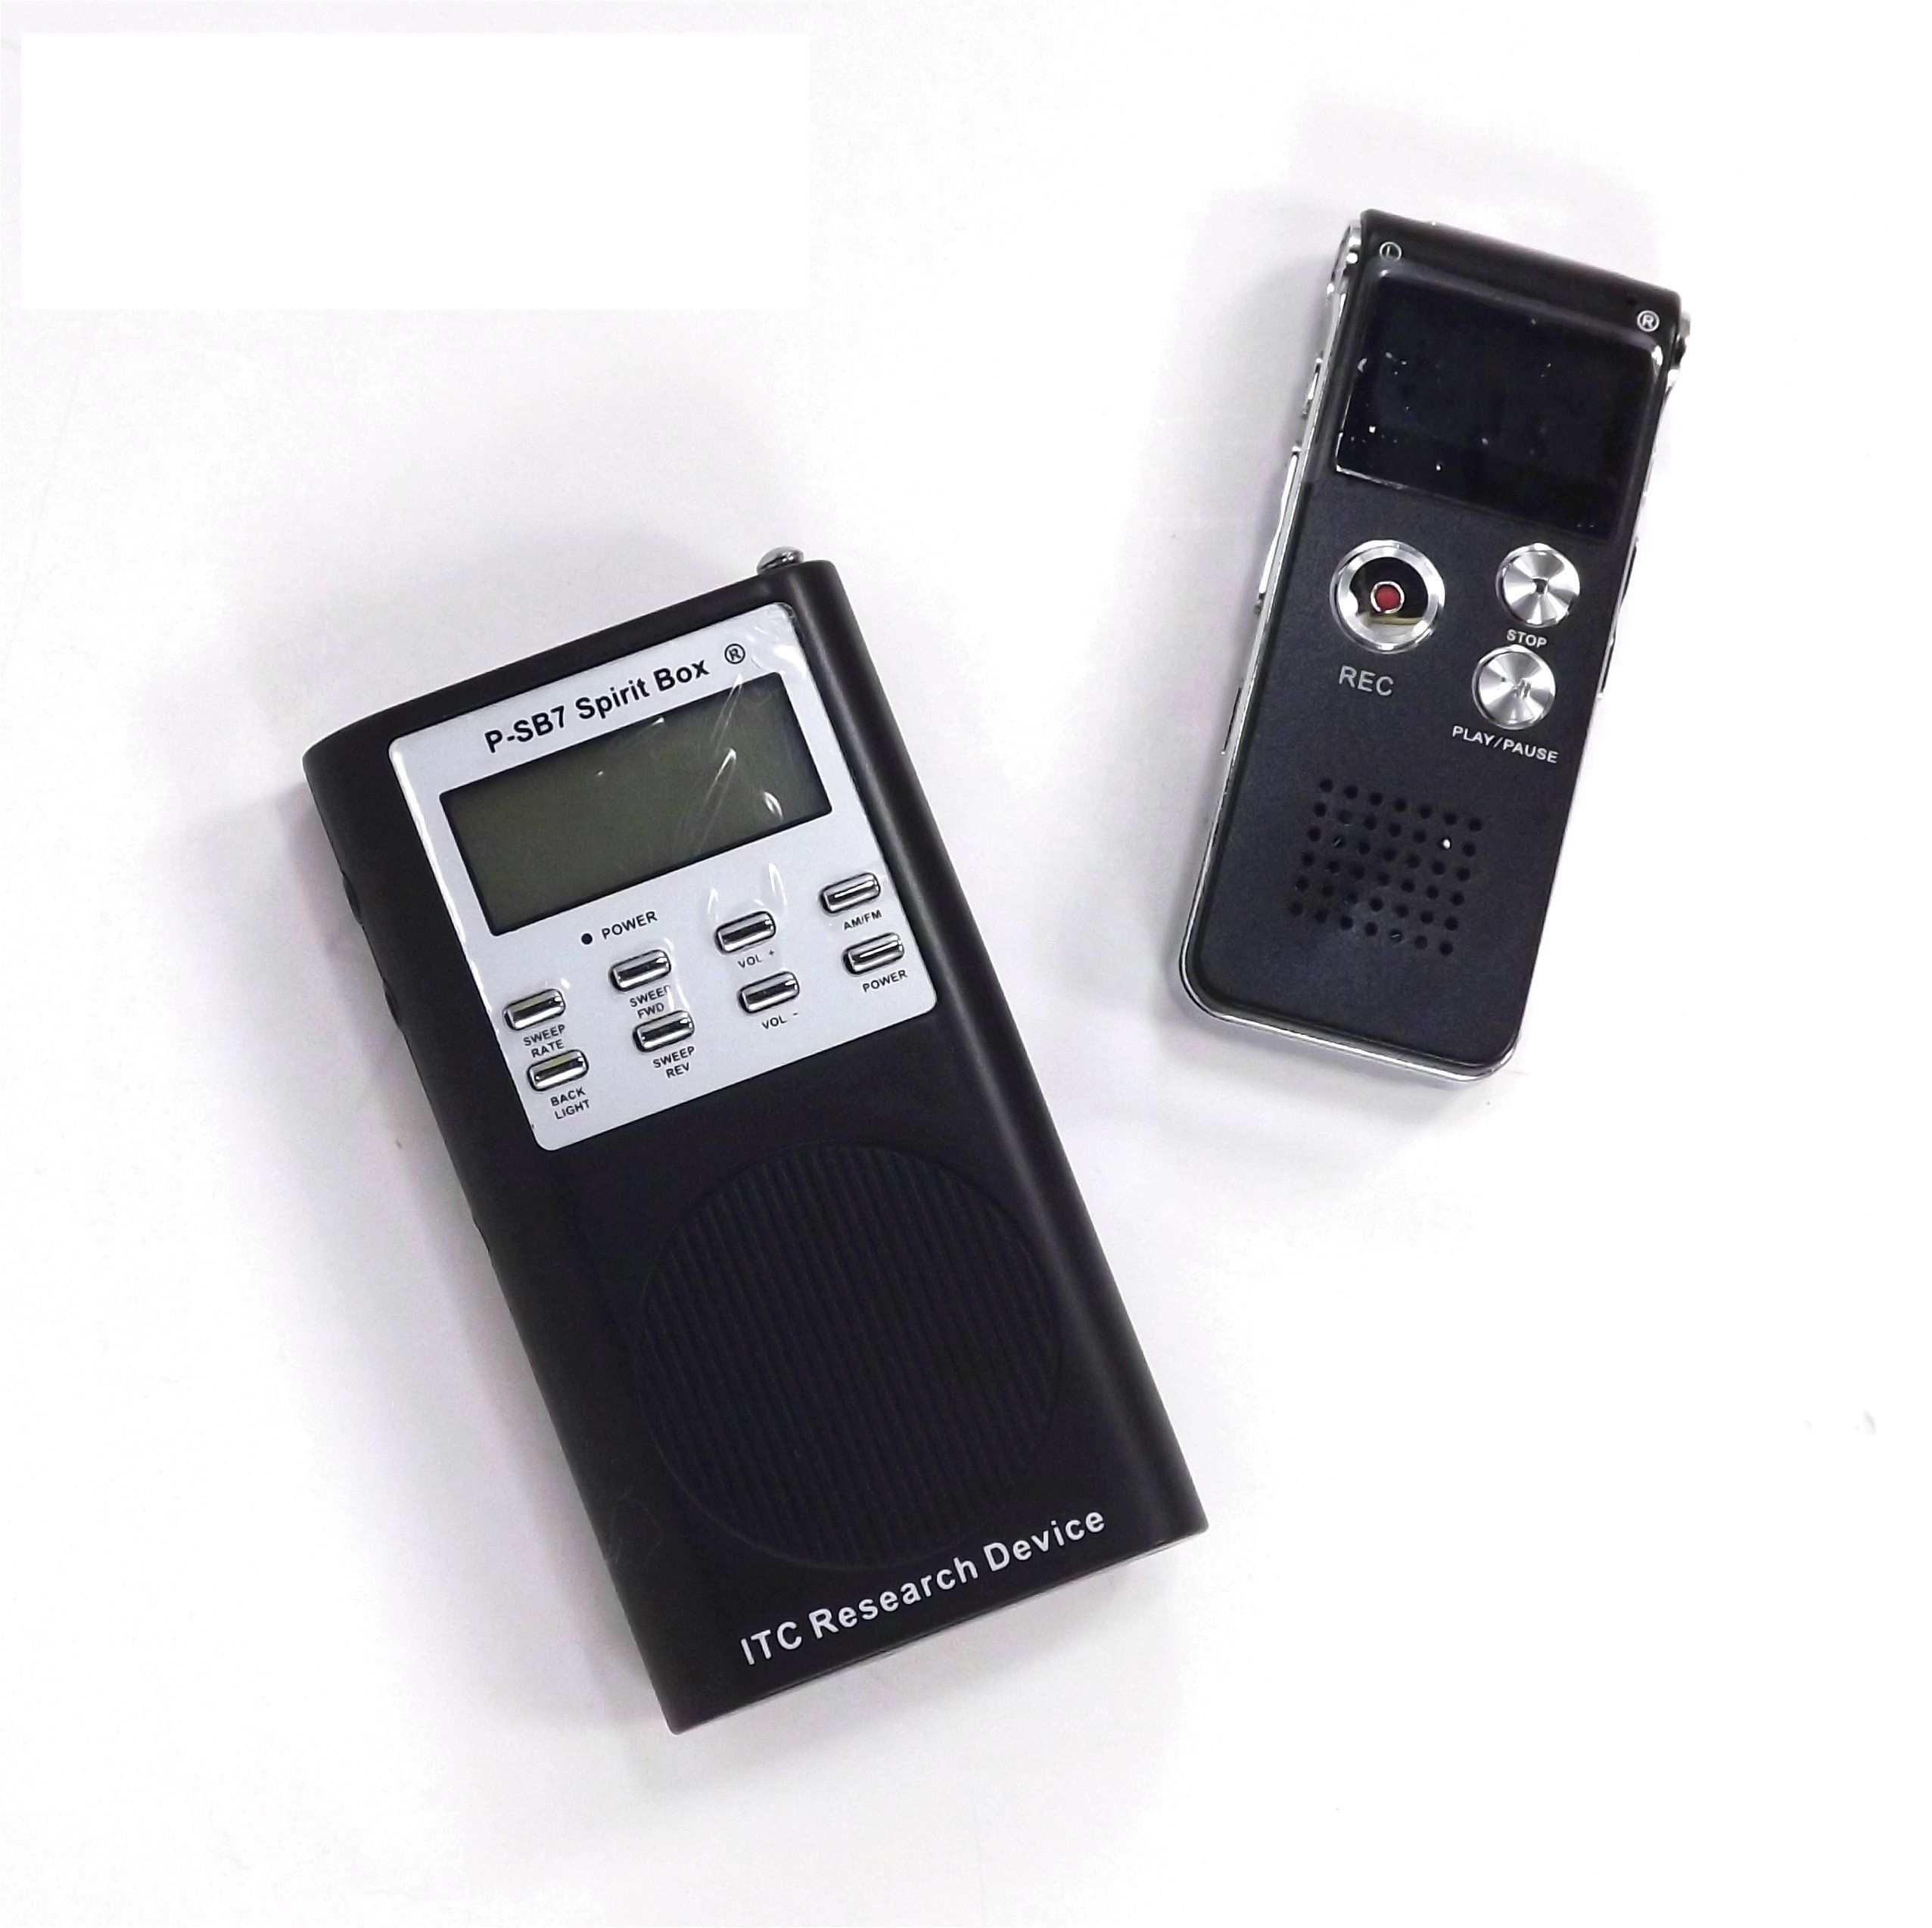 Ghost Evp voice recorder 8GB ghost hunting equipment DIGITAL spirit Dictaphone